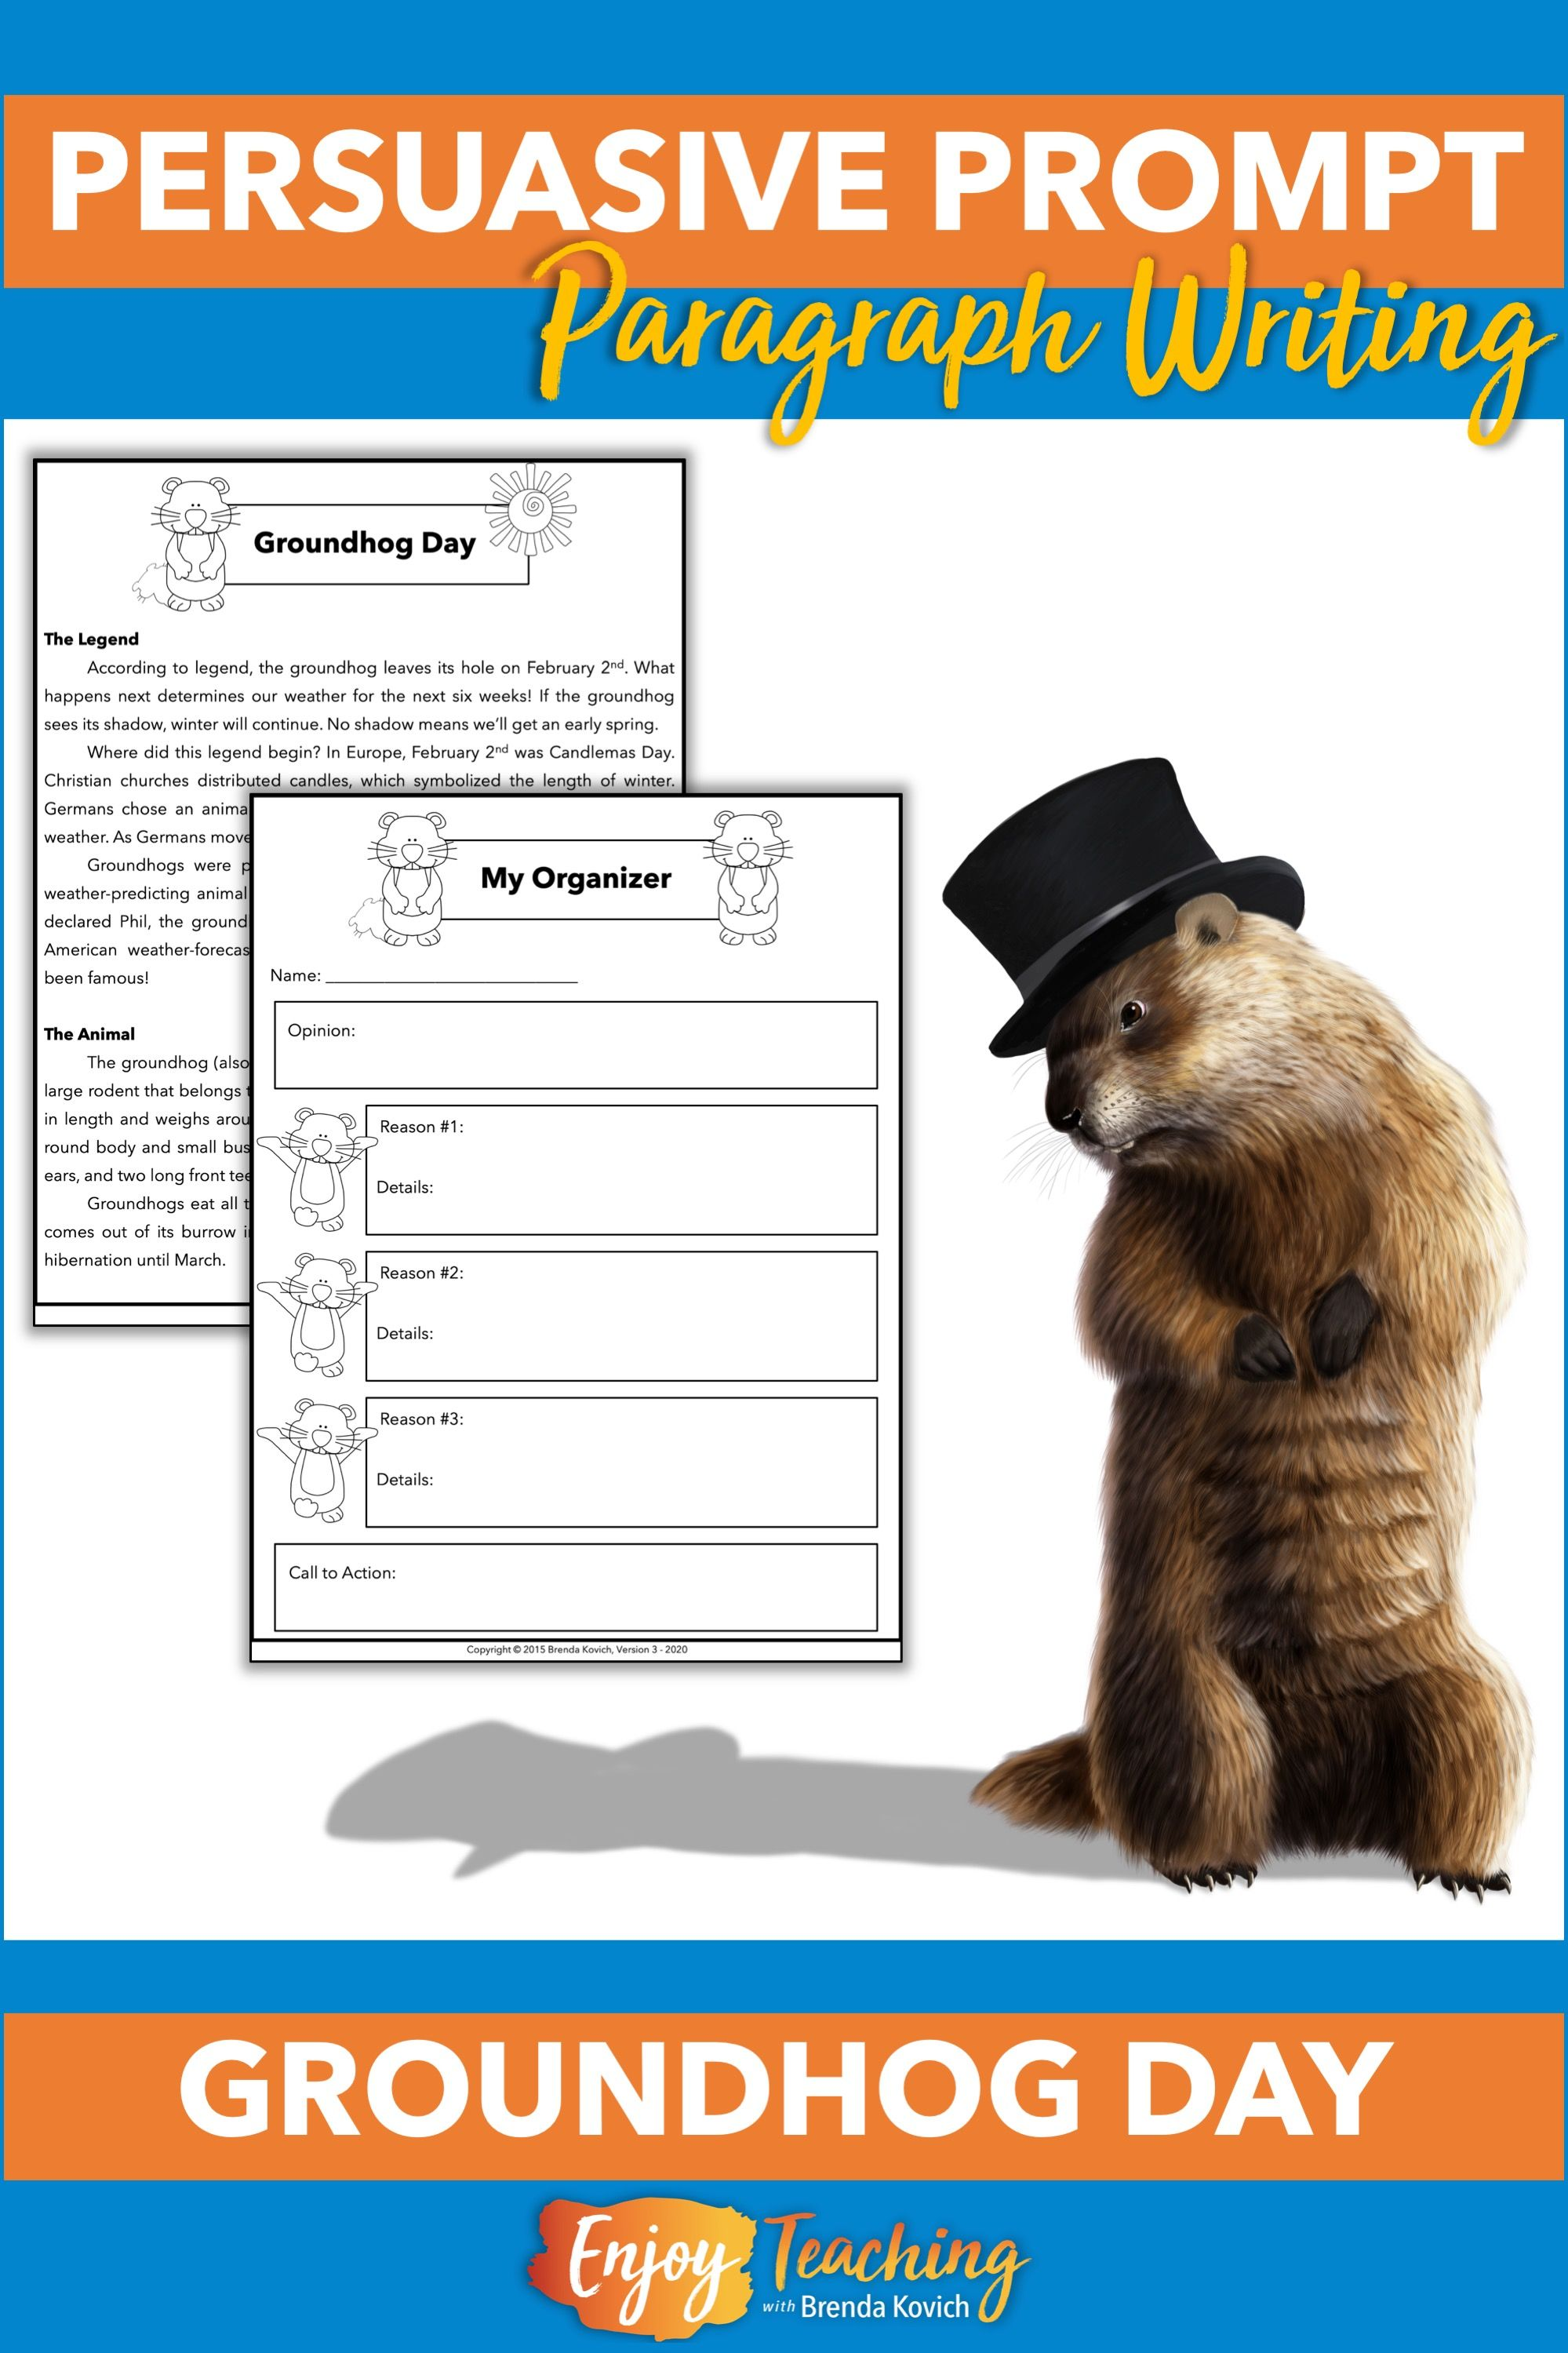 Groundhog Day Writing Activity Persuasive Paragraph Argumentative Writing In 2021 Writing Activities Groundhog Day Activities Groundhog Day [ 2999 x 1999 Pixel ]